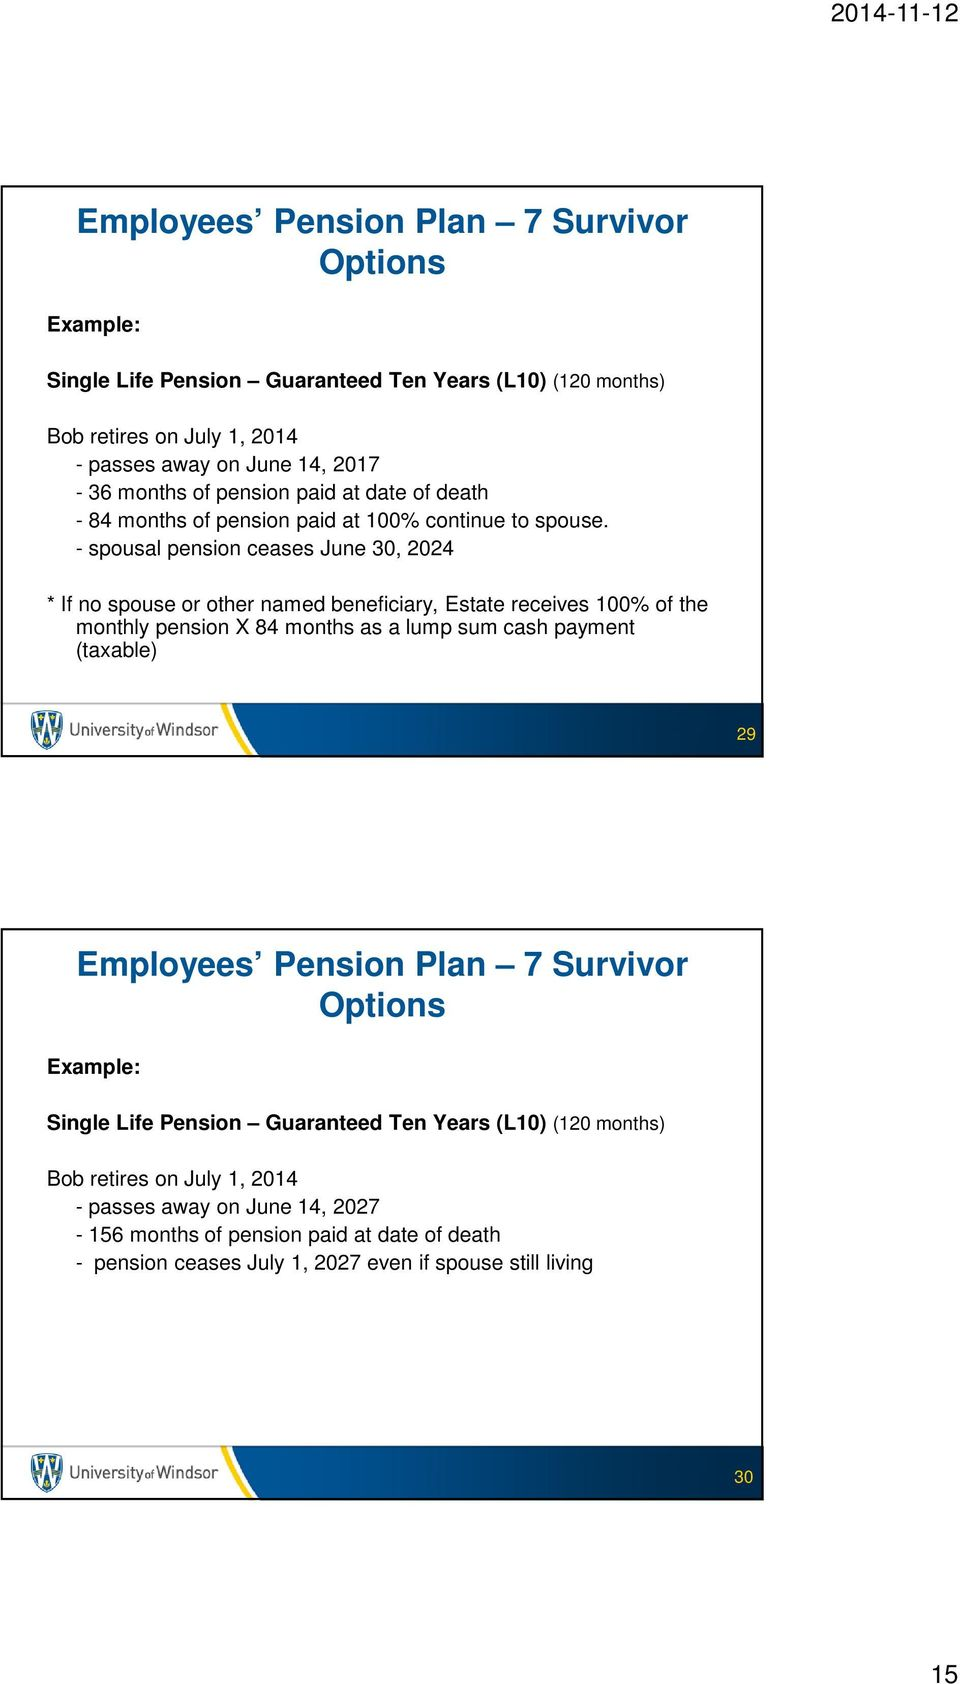 - spousal pension ceases June 30, 2024 * If no spouse or other named beneficiary, Estate receives 100% of the monthly pension X 84 months as a lump sum cash payment (taxable) 29